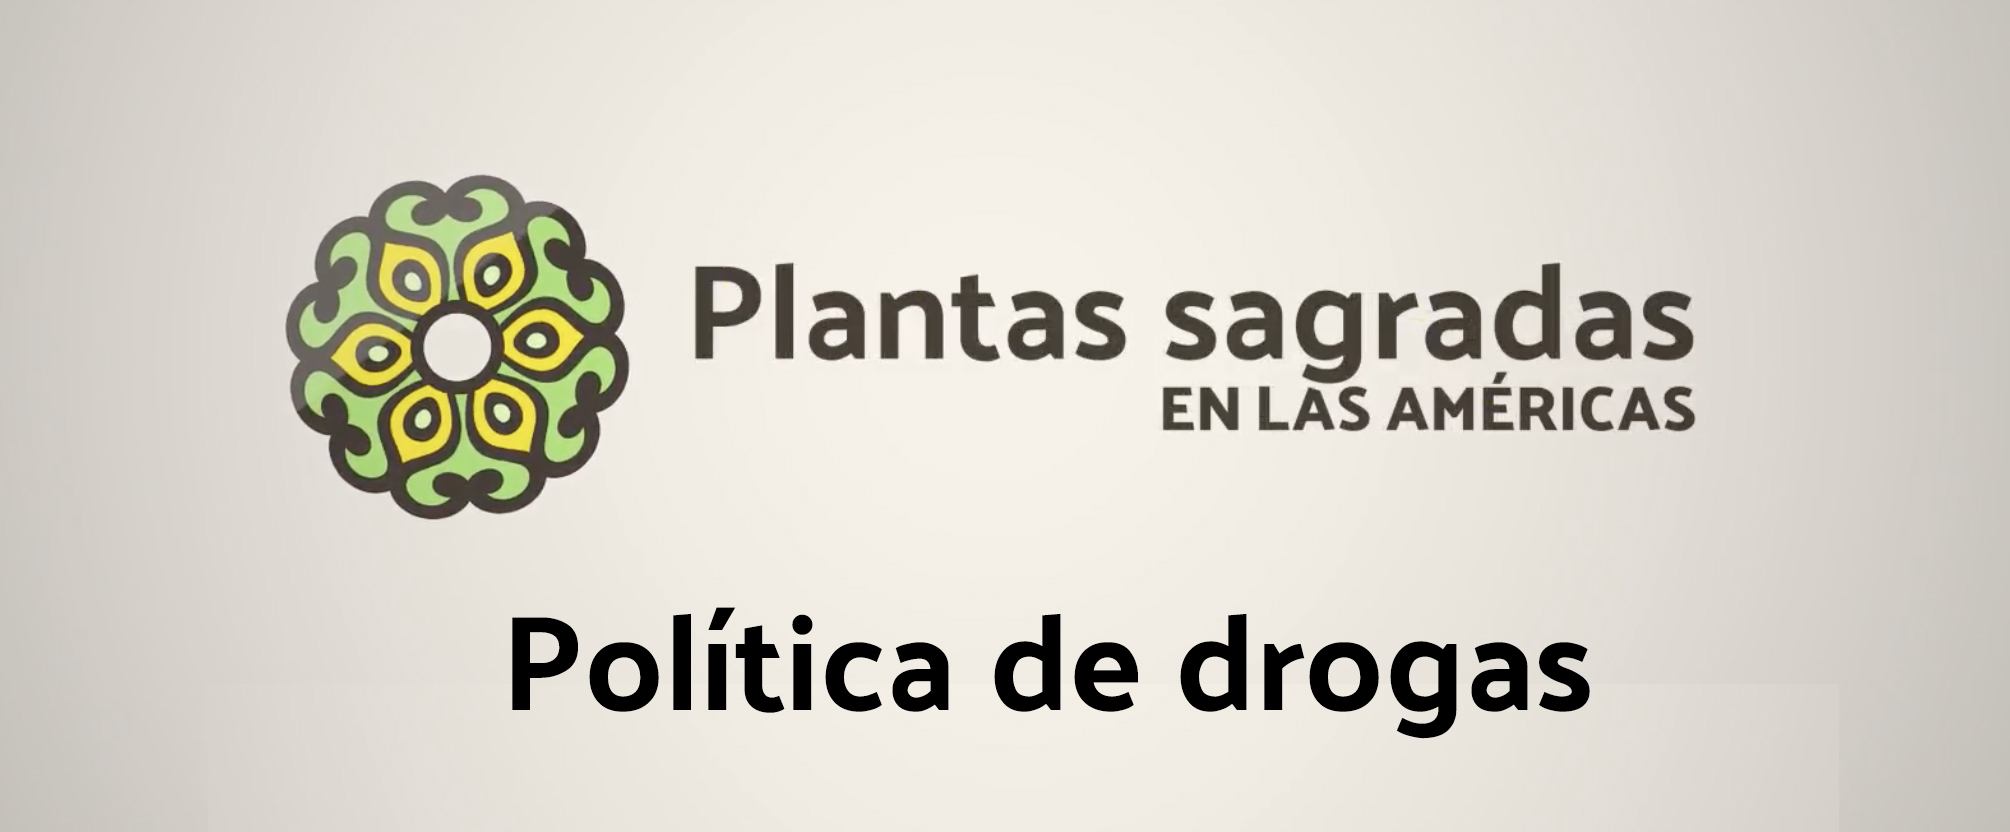 plantassagradaspoliticadedrogas